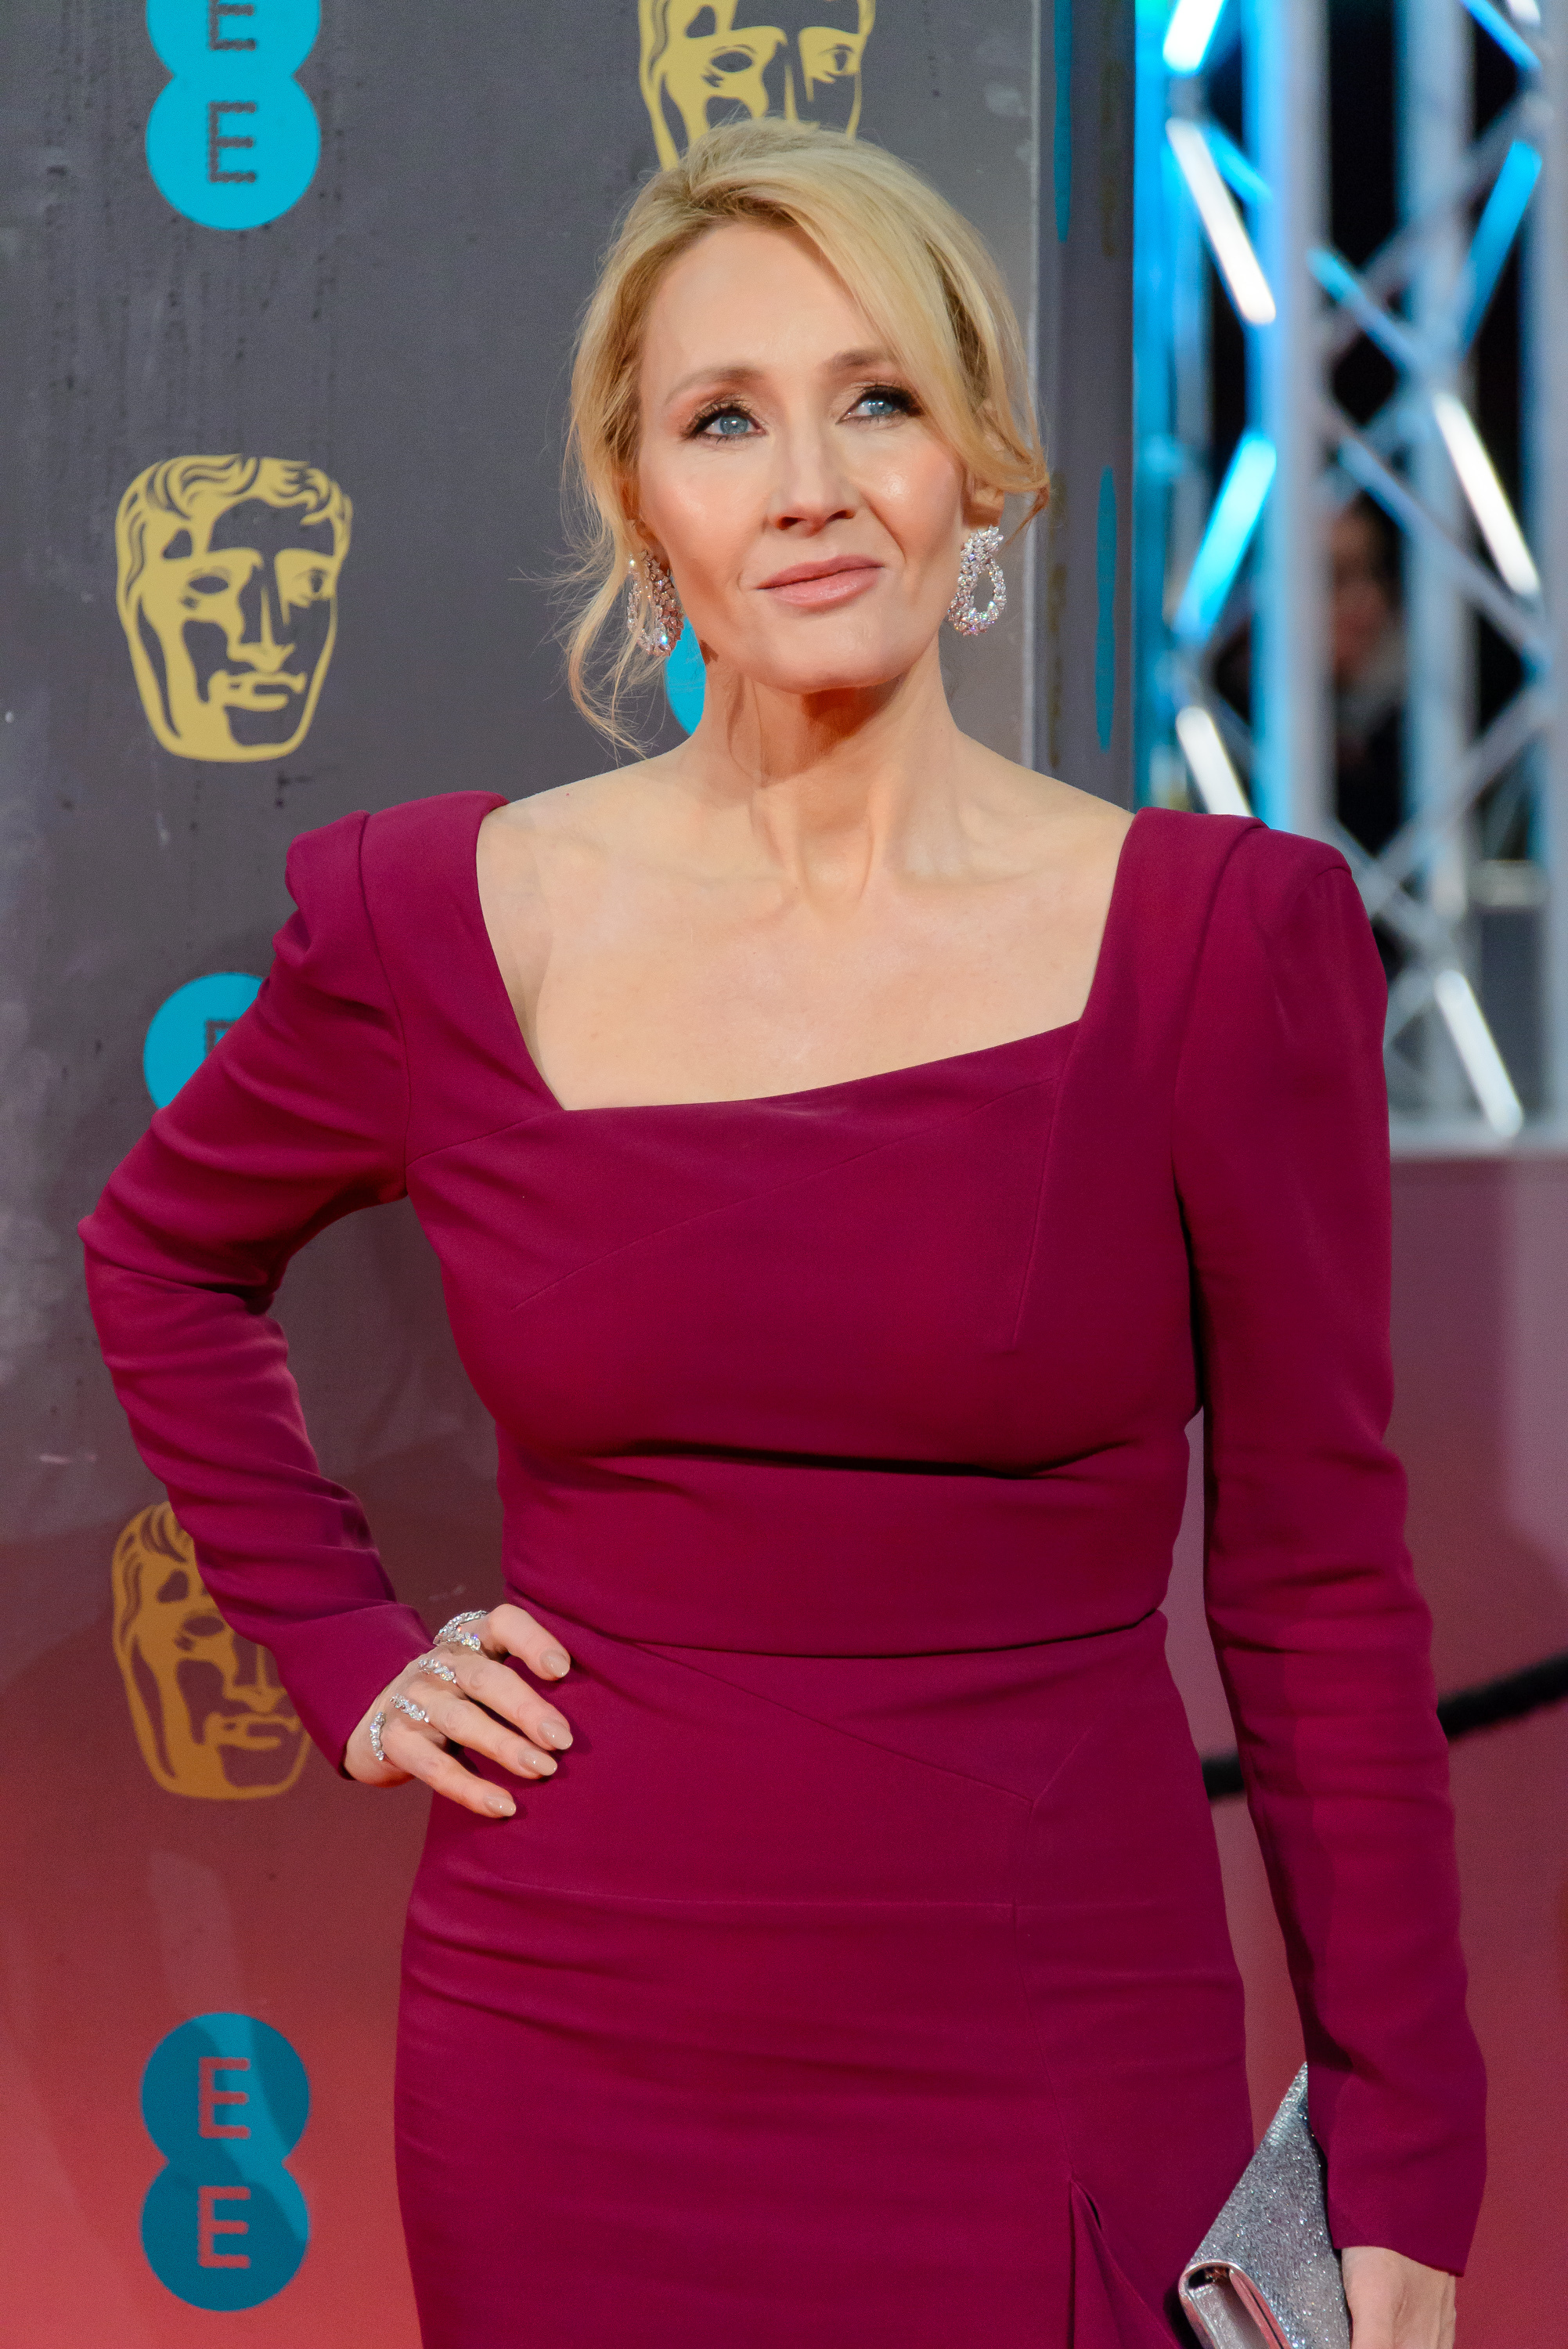 The 2017 EE British Academy Film Awards (BAFTAs) - Arrivals  Featuring: J.K. Rowling Where: London, United Kingdom When: 12 Feb 2017 Credit: Joe/WENN.com